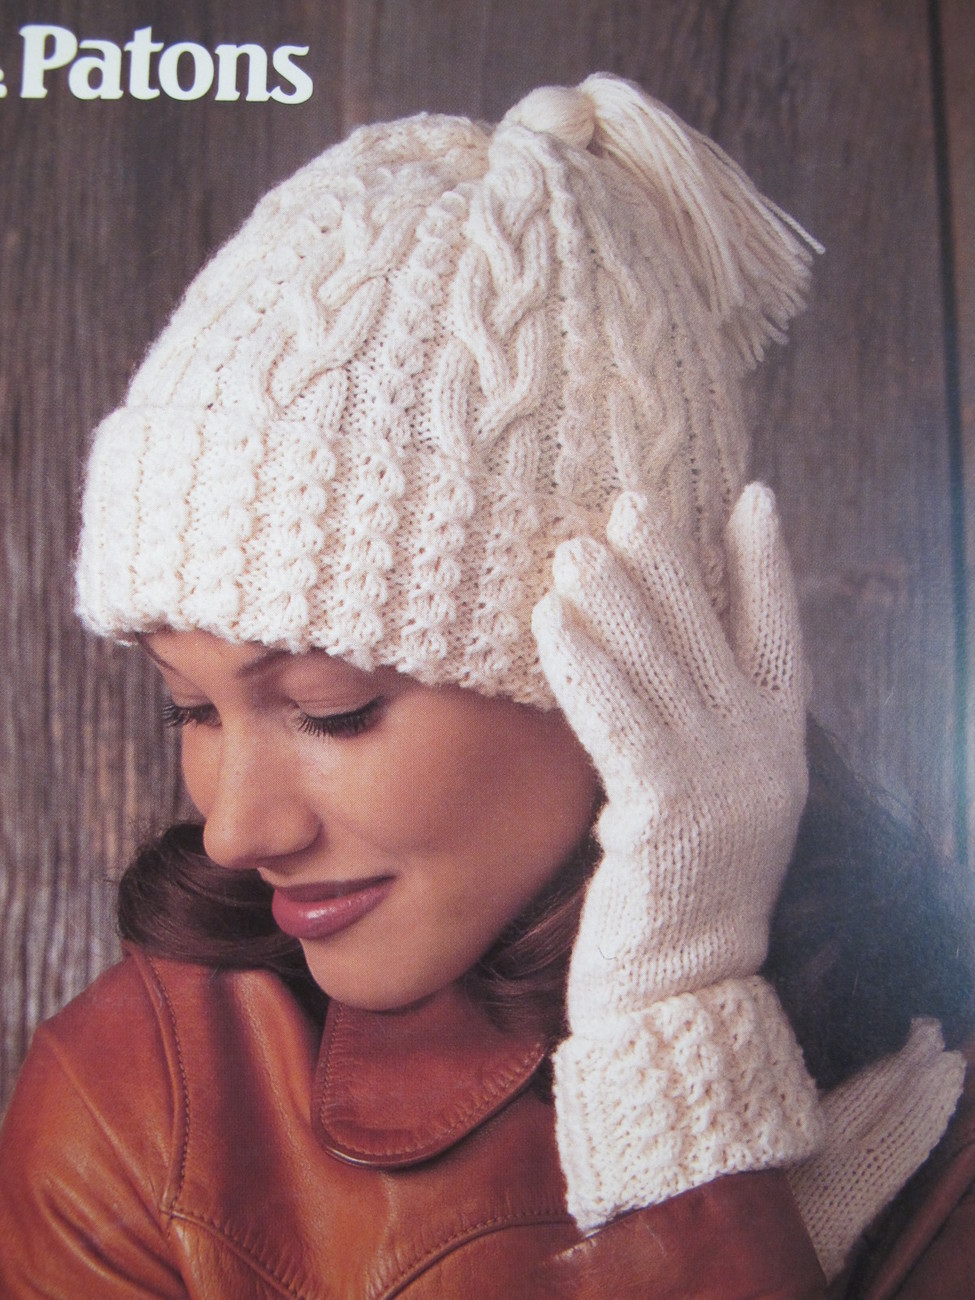 Knitting Pattern For Hat Scarf And Gloves : Patons Knitting Patterns Hats Scarves Mitts Gloves ADULTS Nordic Fair Isle Ar...